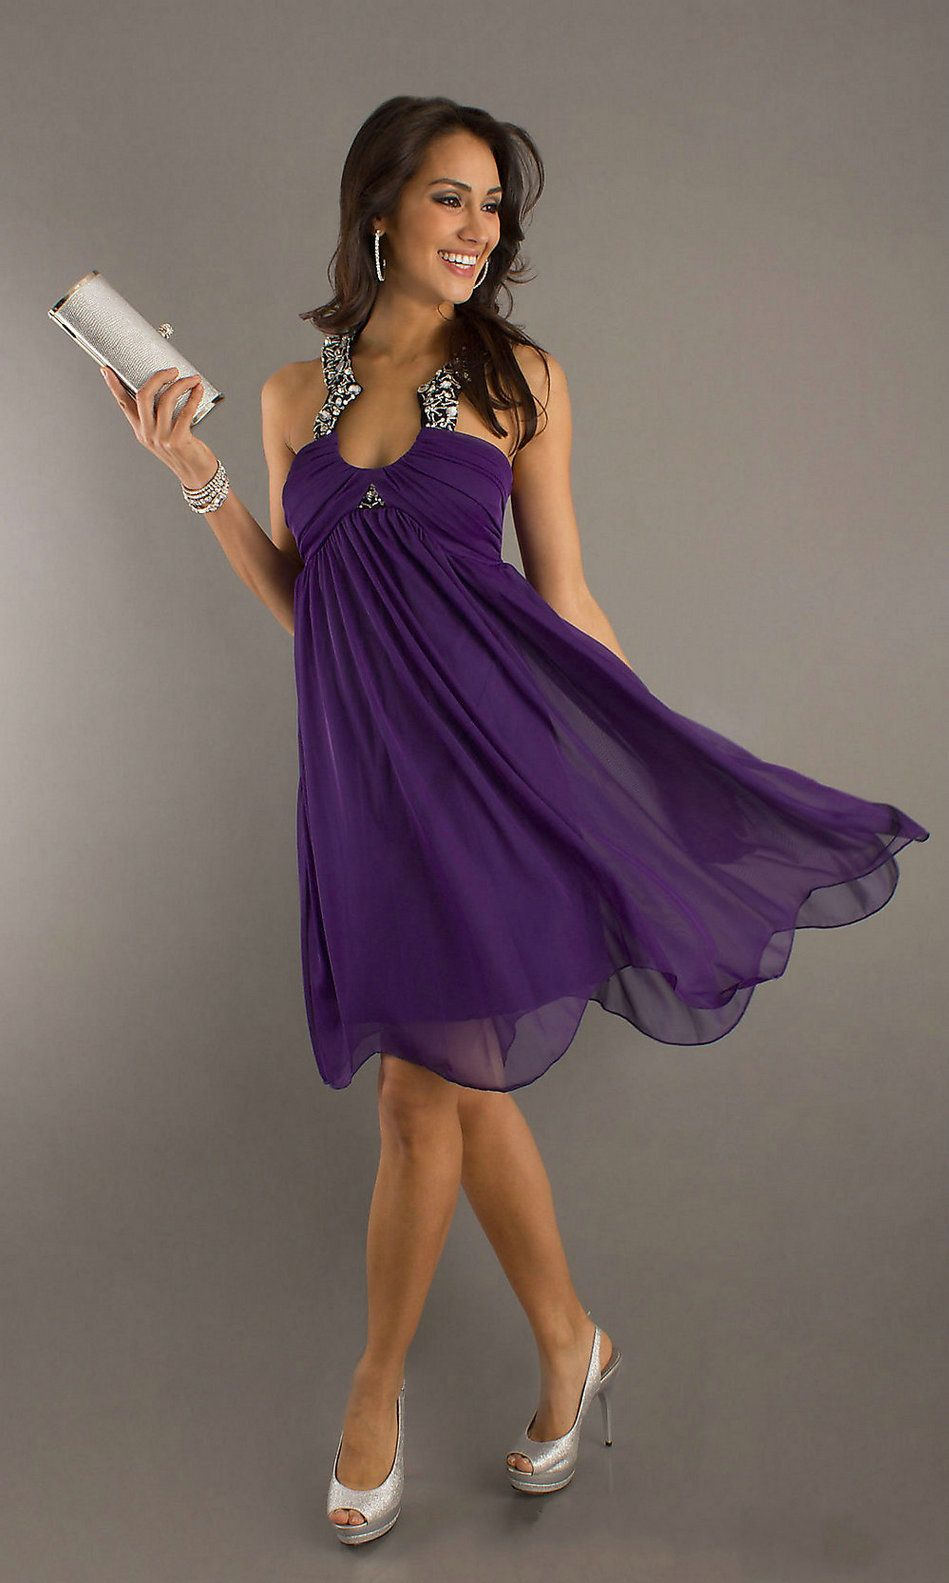 Top 25 ideas about Purple Cocktail Dress on Pinterest | Shorts ...